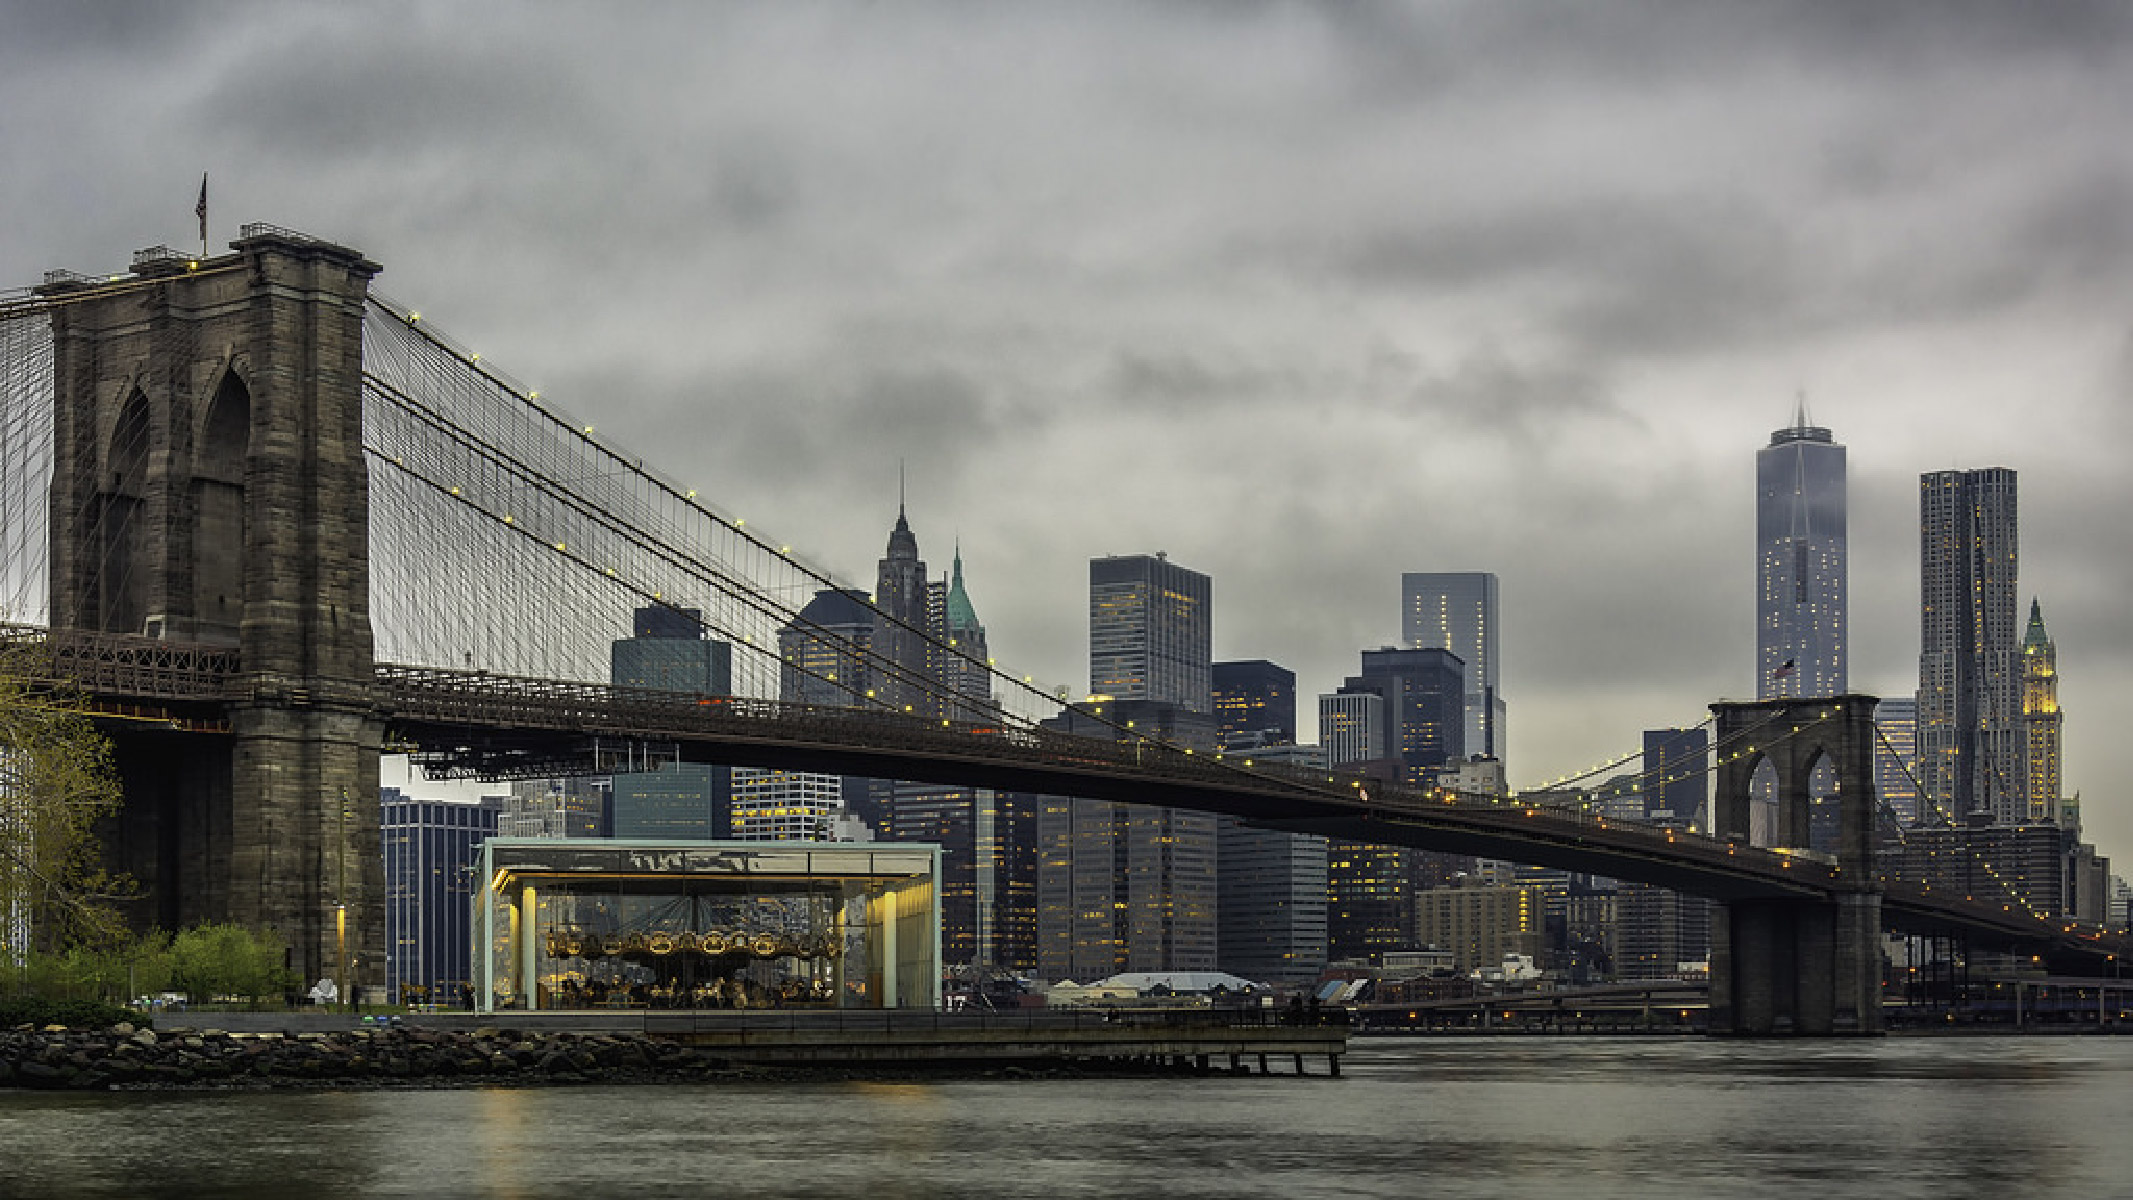 Jane's Carousel is located at the Brooklyn Bridge Park